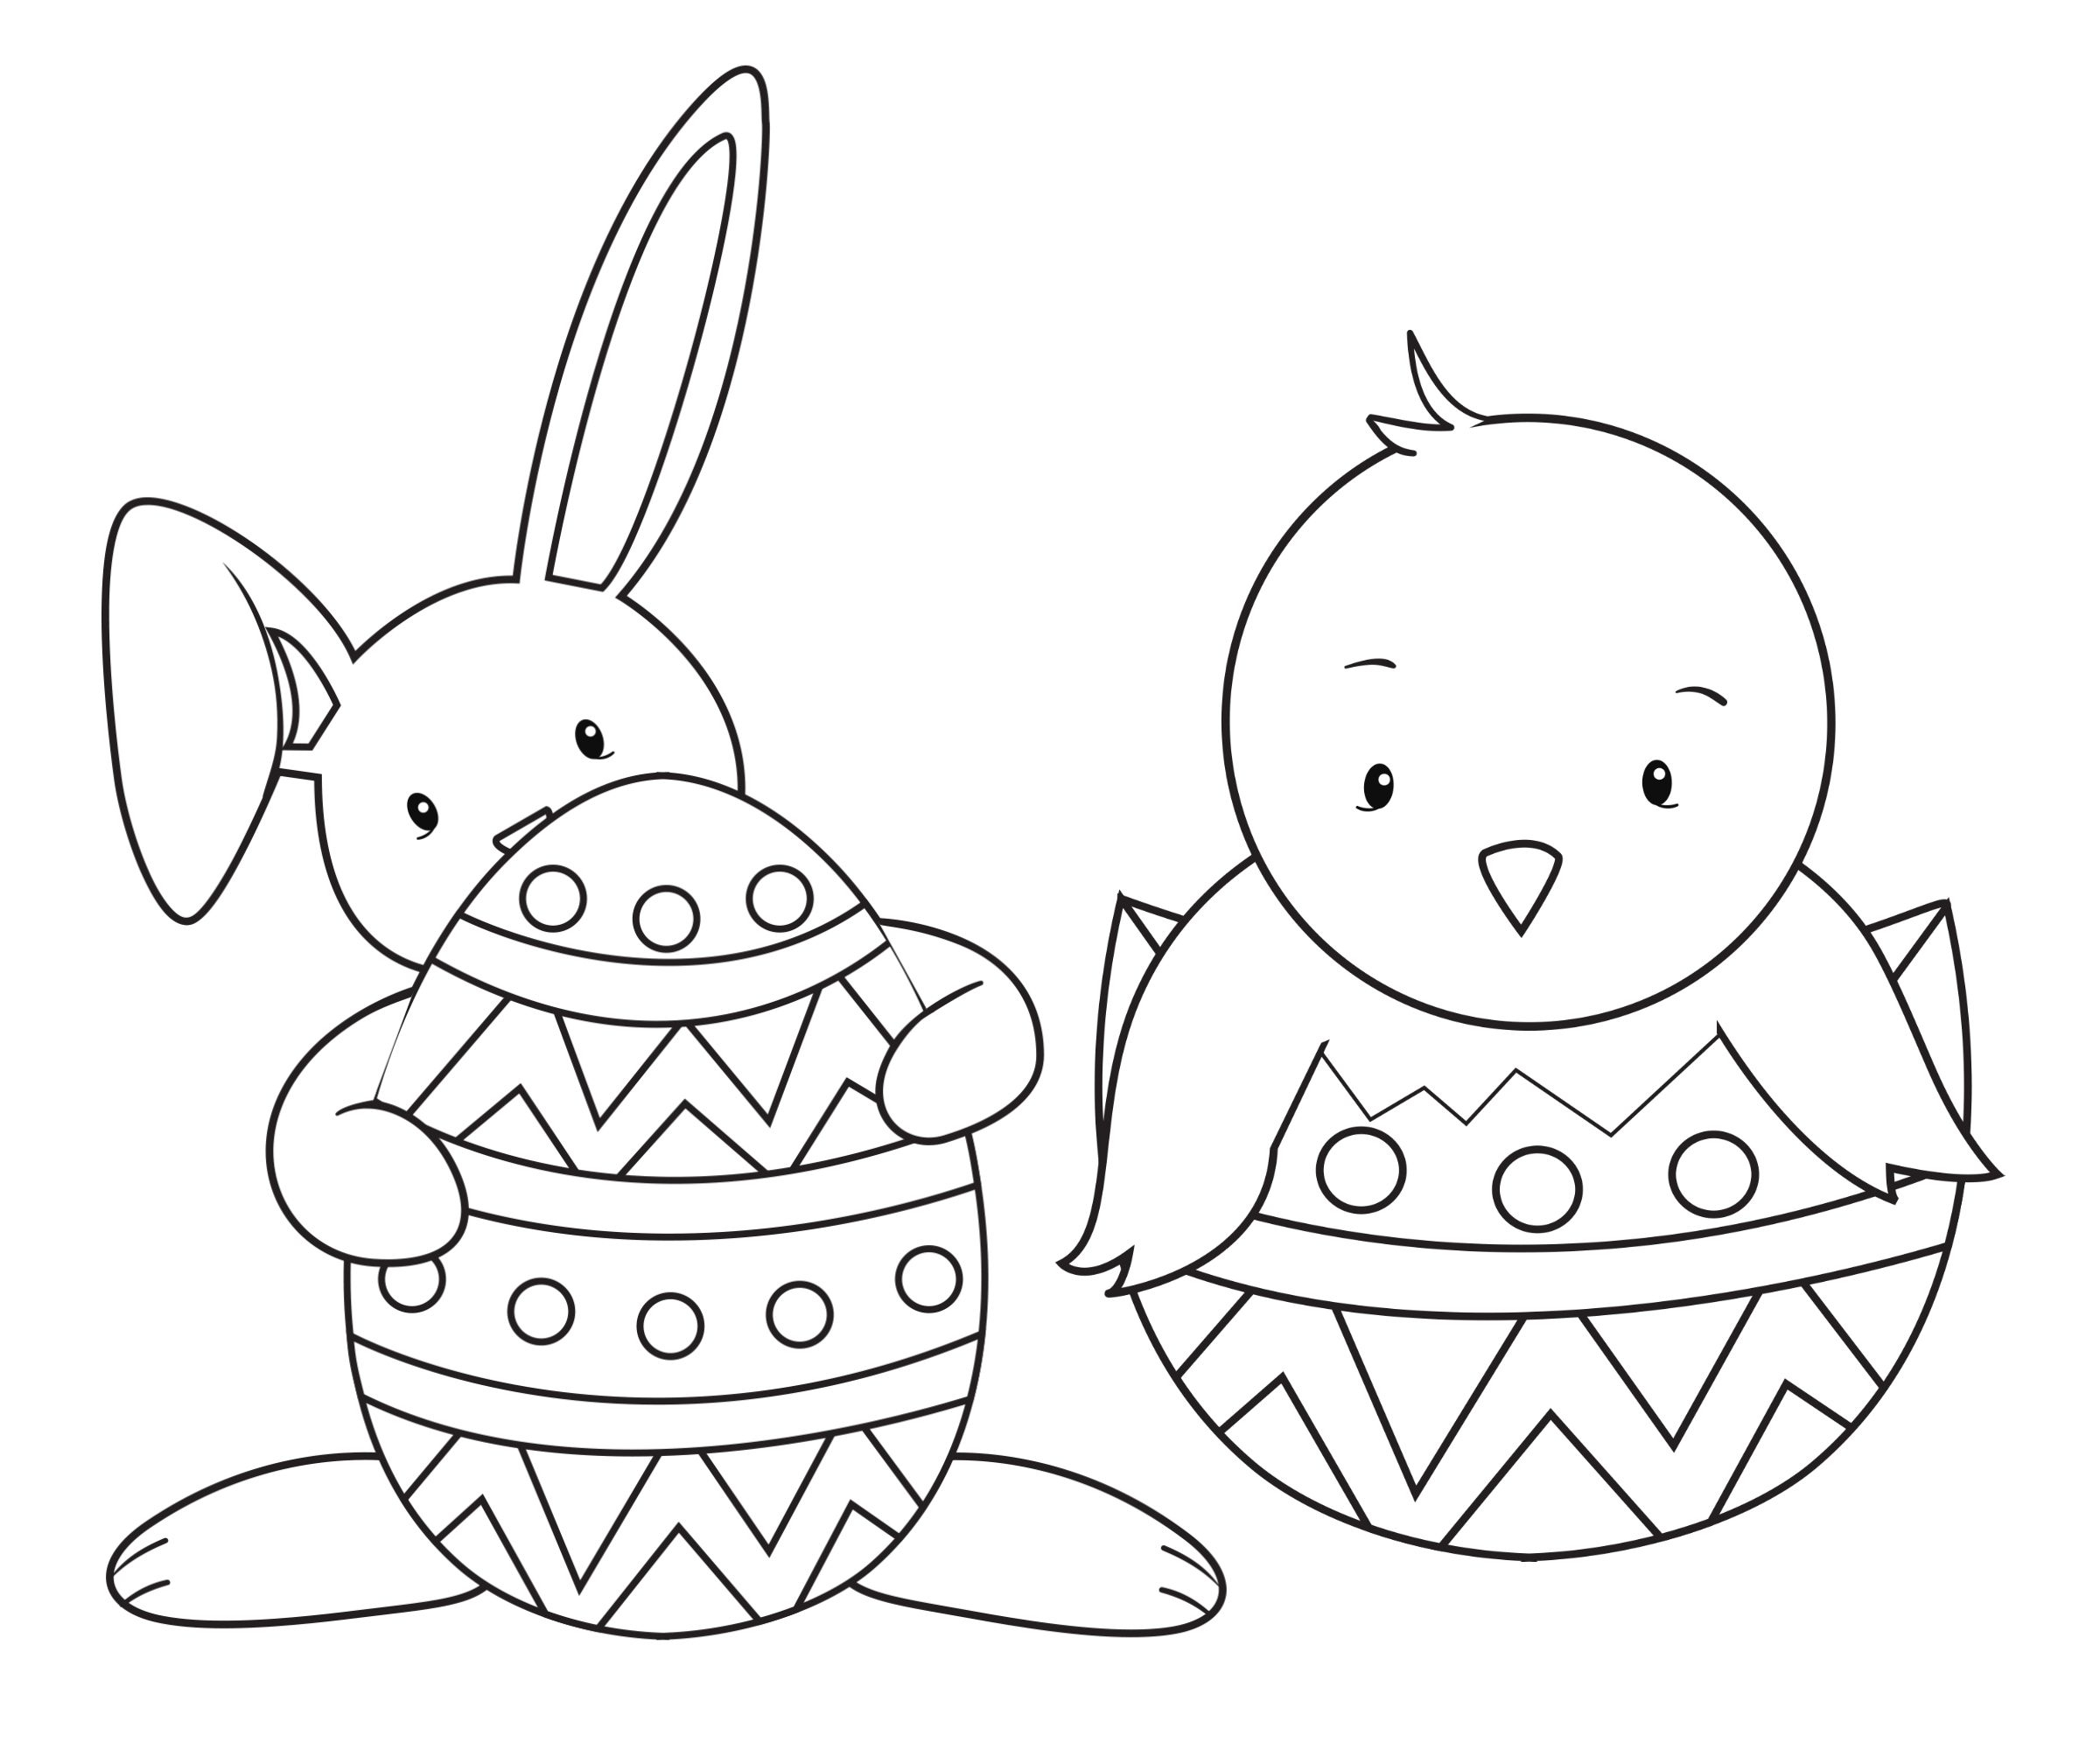 Easter Coloring Pages for Kids to Print Of Easter Coloring Pages for Kids Crazy Little Projects Printable